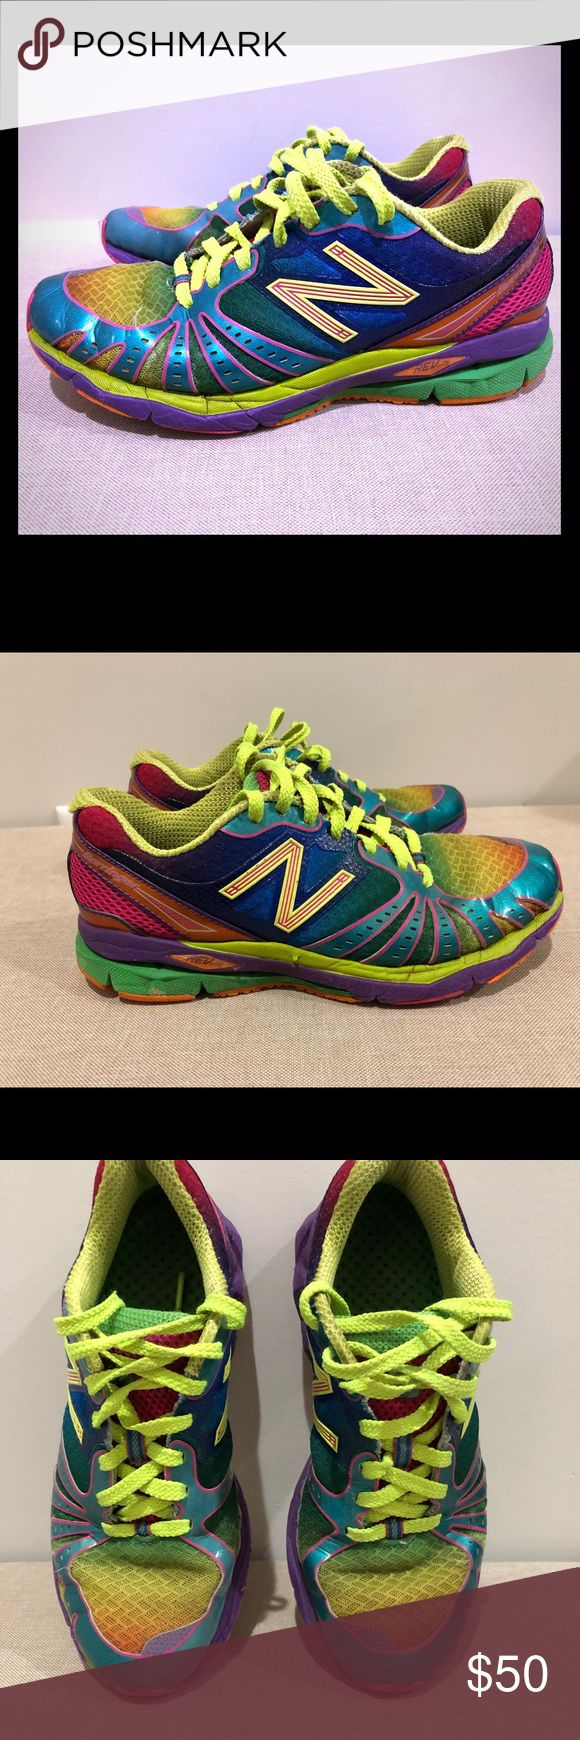 New Balance Barringer 890 revlite rainbow size 7.5 Oh my gosh. These super hard to find New Balance Barringer 890 Revlite Rainbow's were well loved and the most complimented shoes I've ever owned. I just don't wear them anymore. Retail around $135. *rare* New Balance Shoes Athletic Shoes